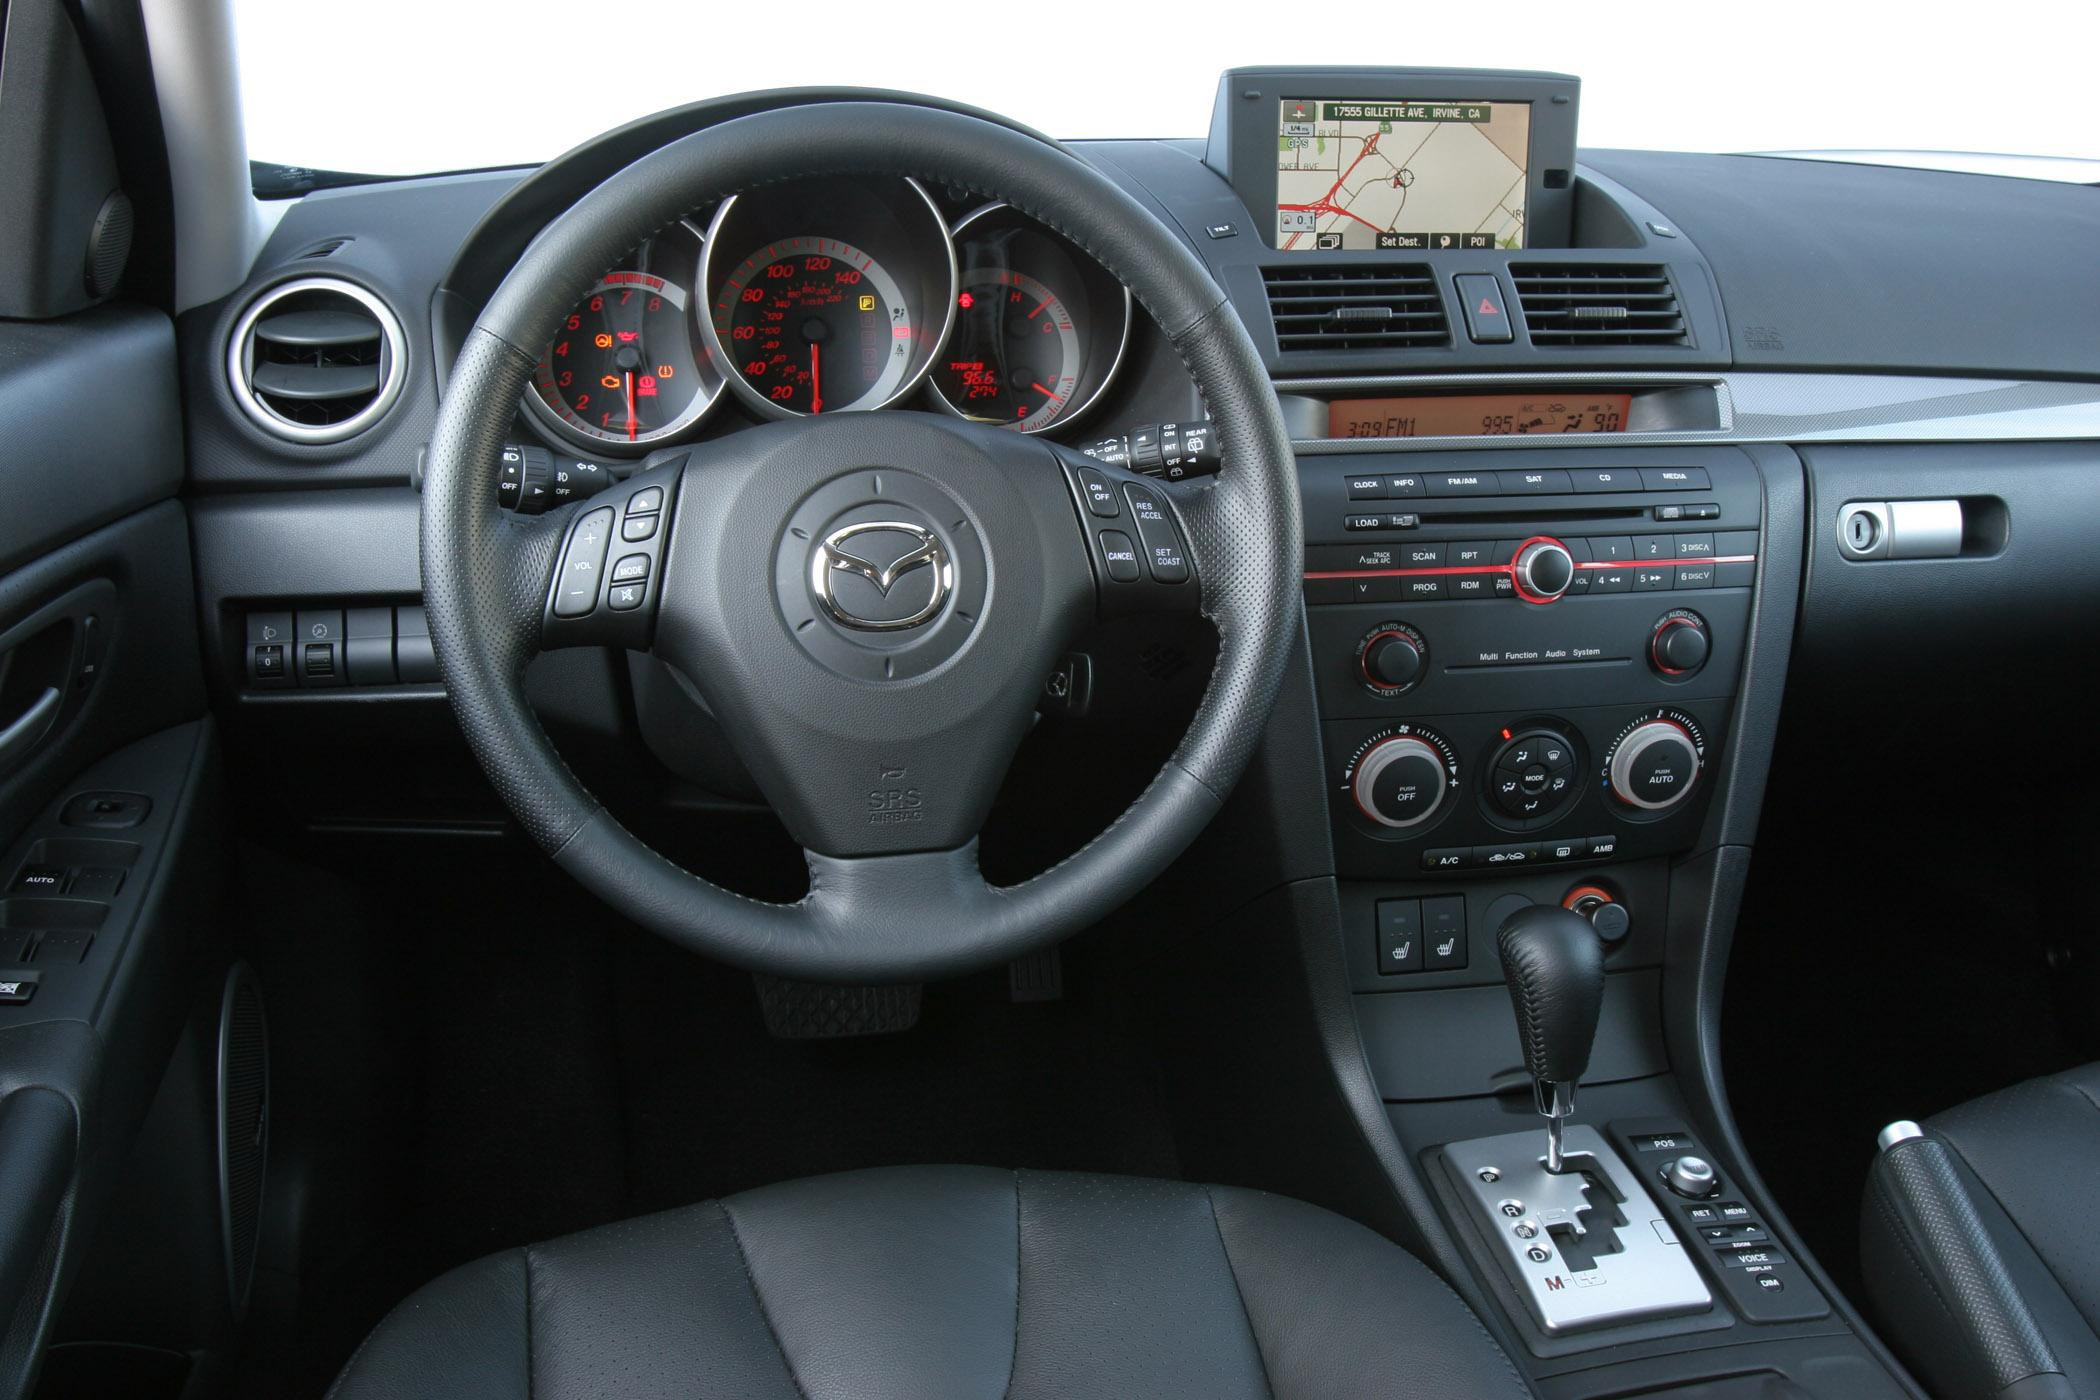 2006 Mazda Mazda3 | Top Speed. »